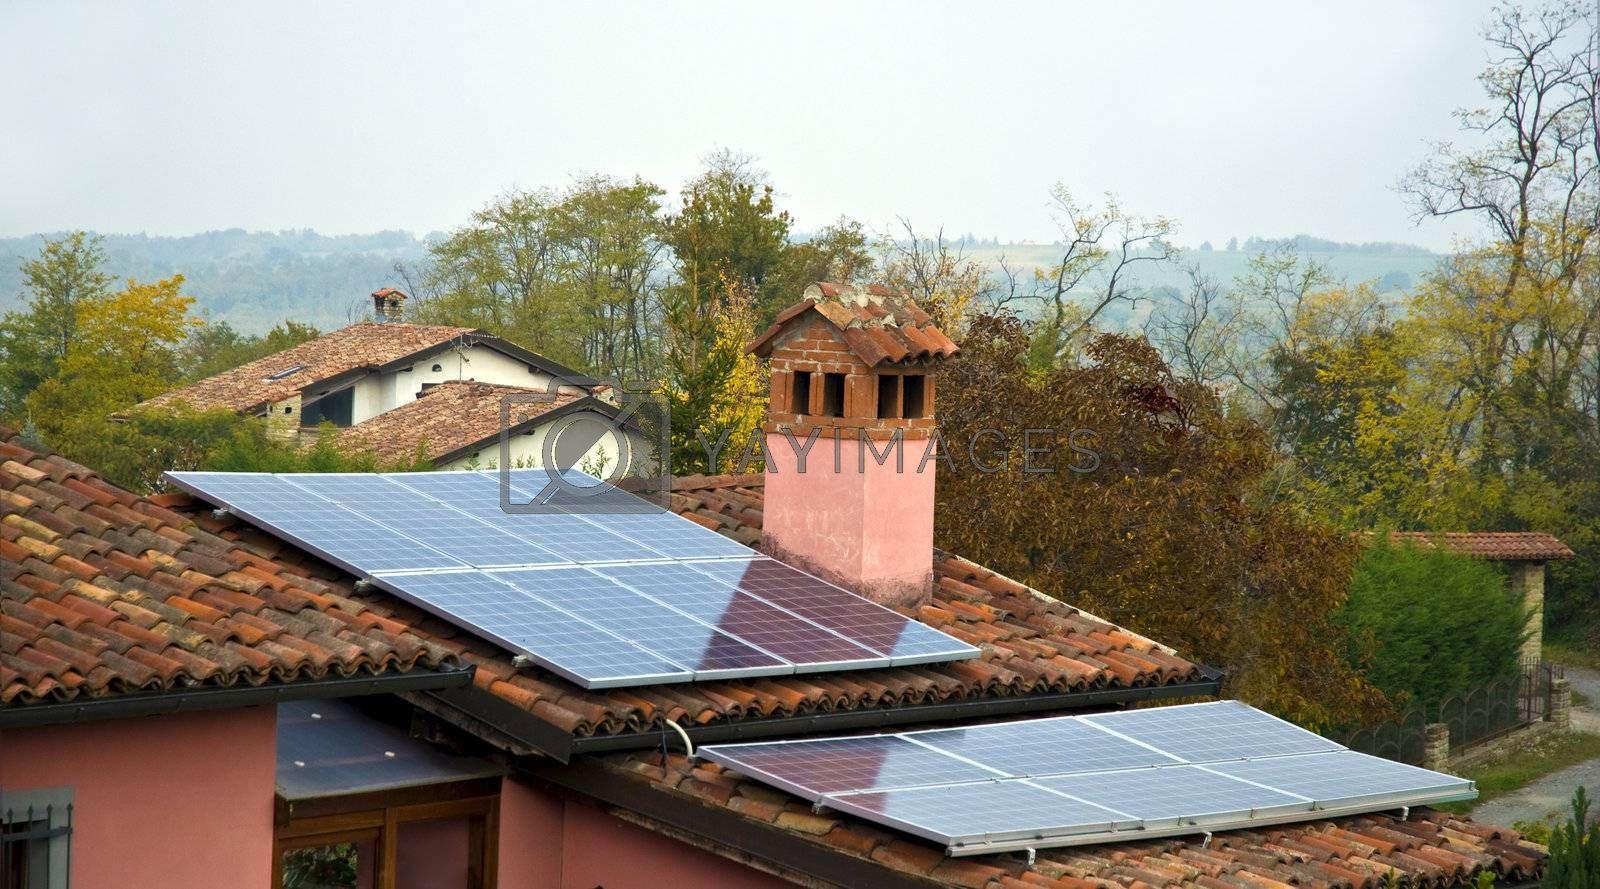 pitched roof with solar panels